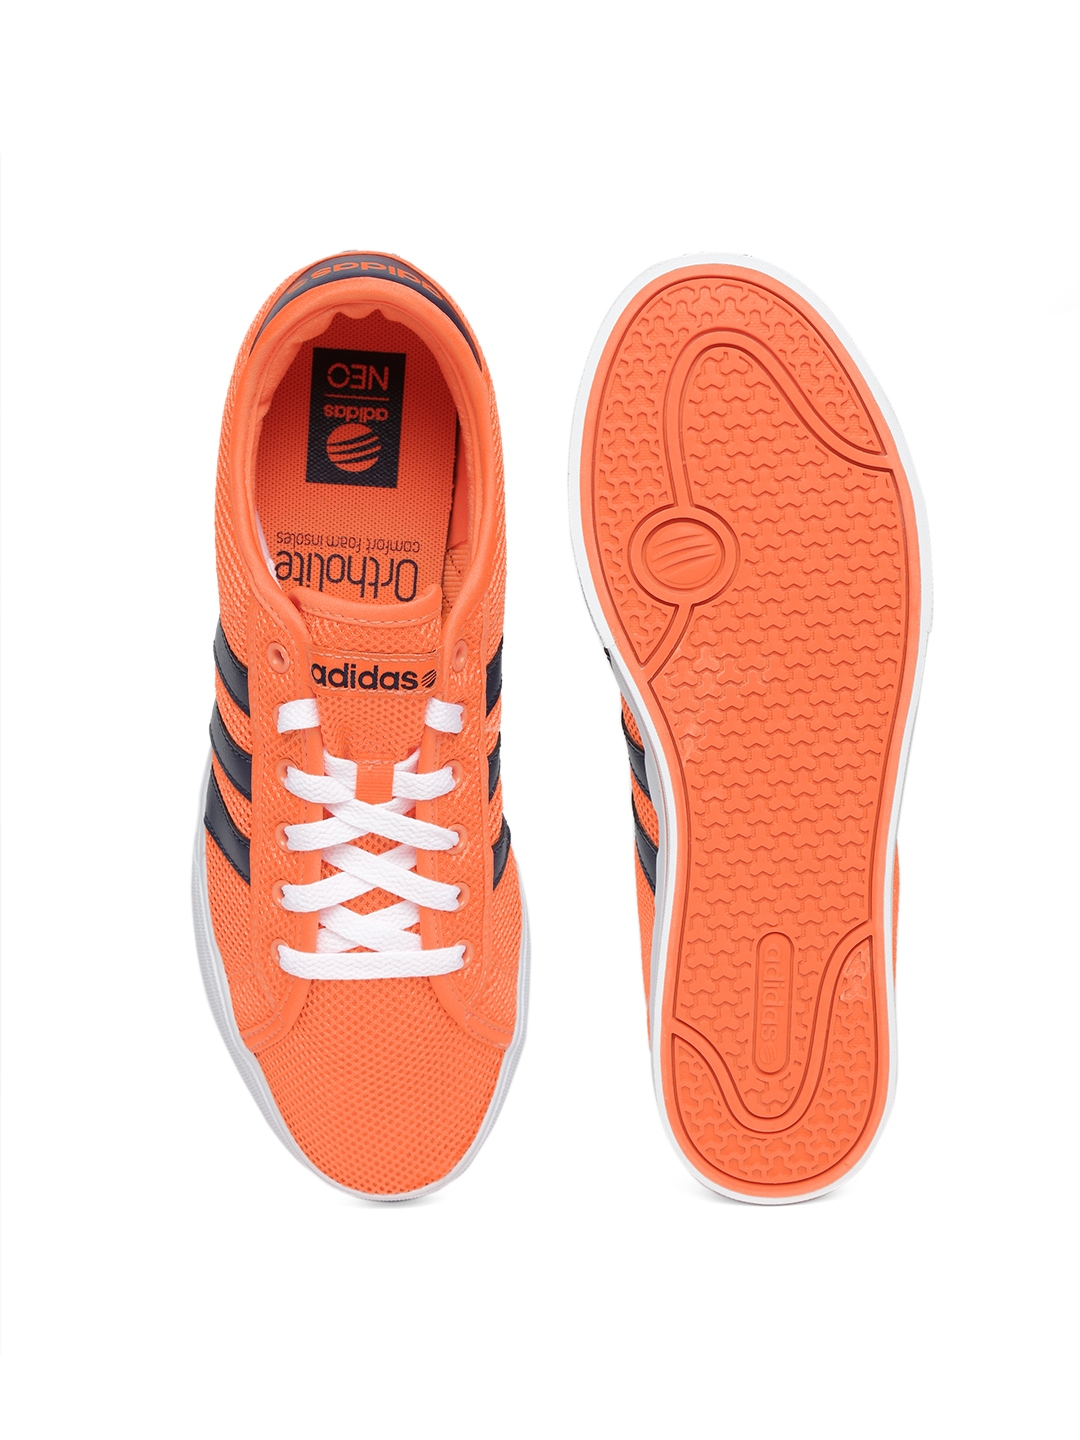 wholesale dealer 5b100 69624 ... adidas neo shoes orange ...